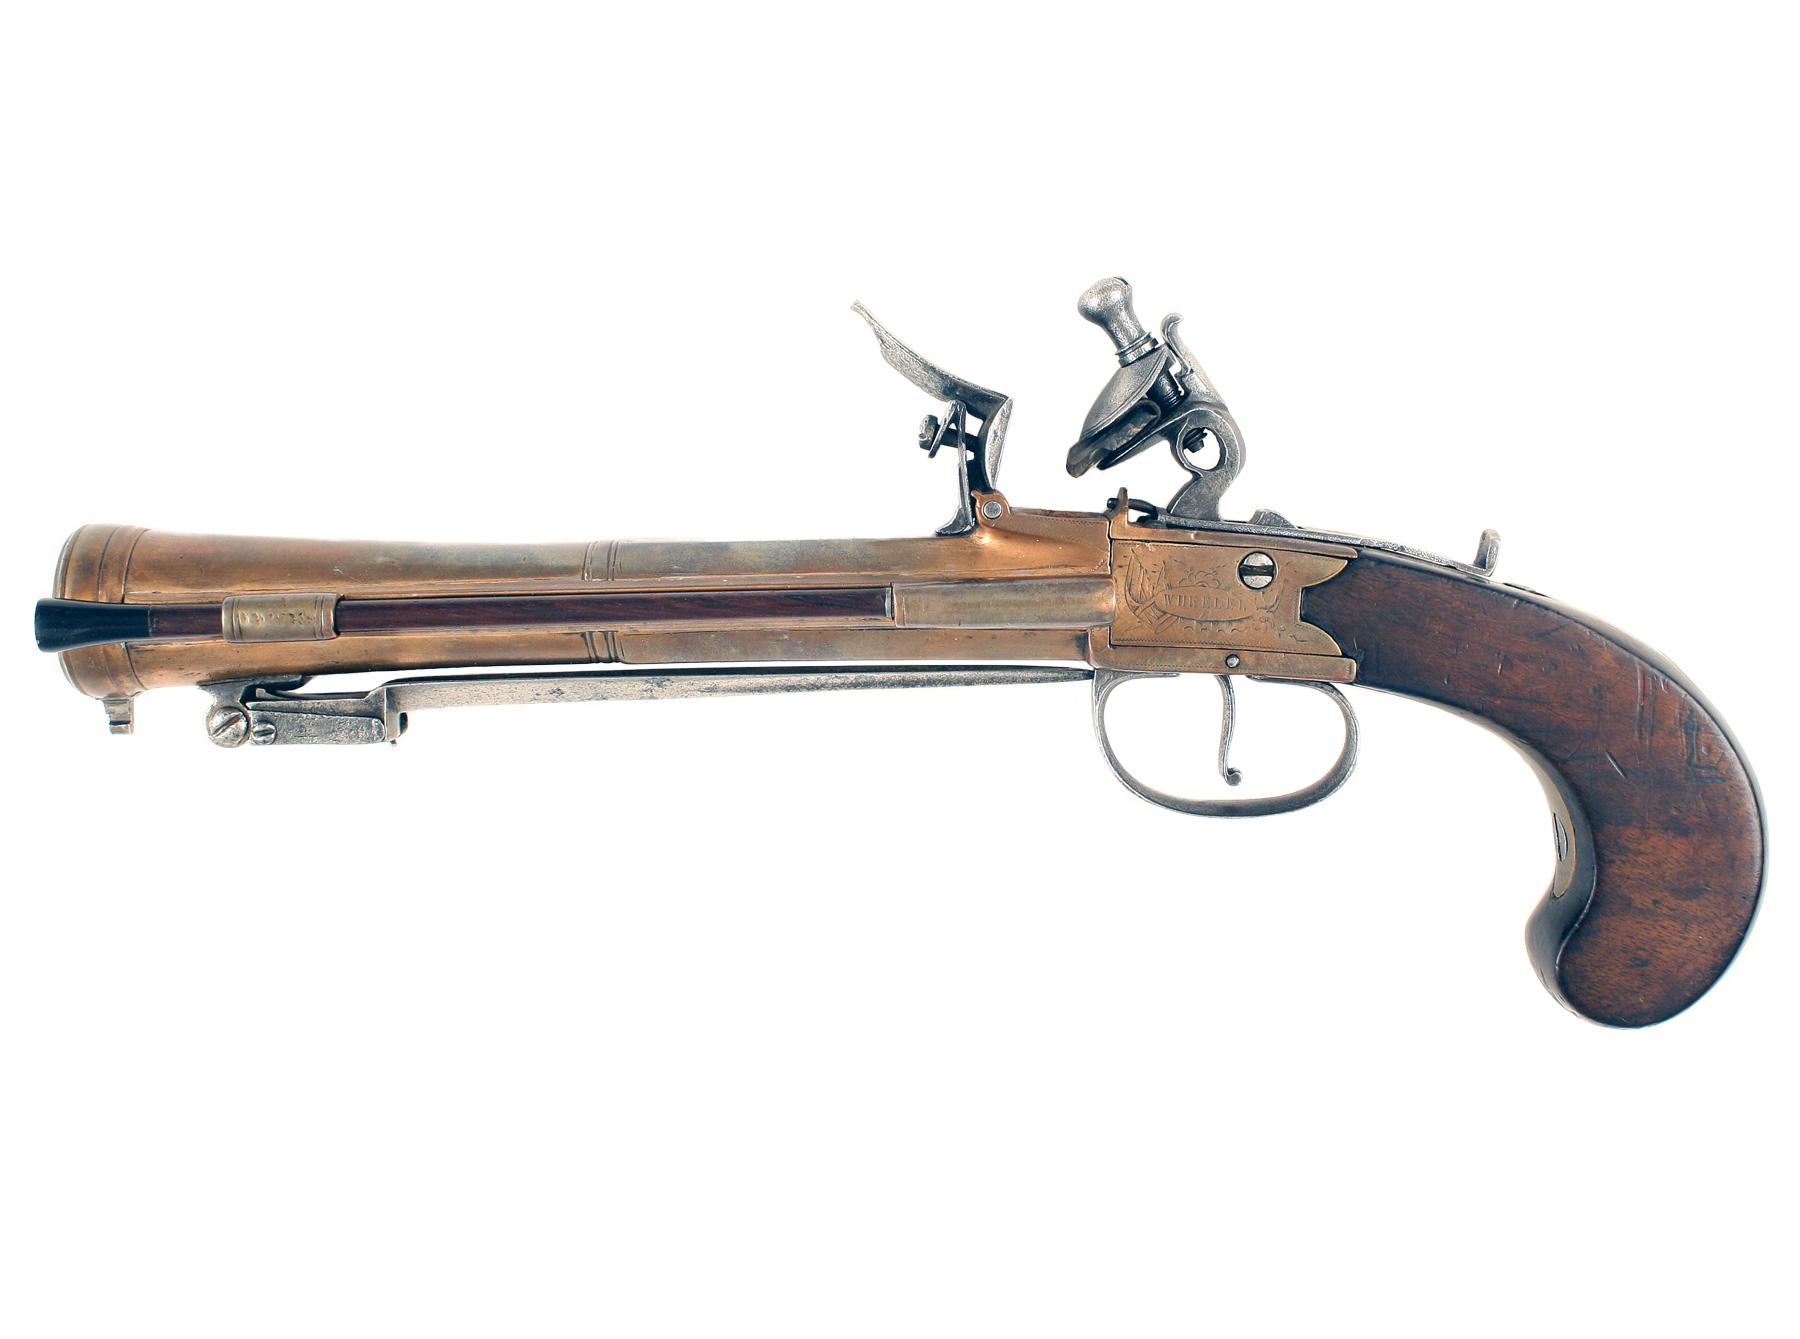 A Flintlock Blunderbuss Pistol by Wheeler